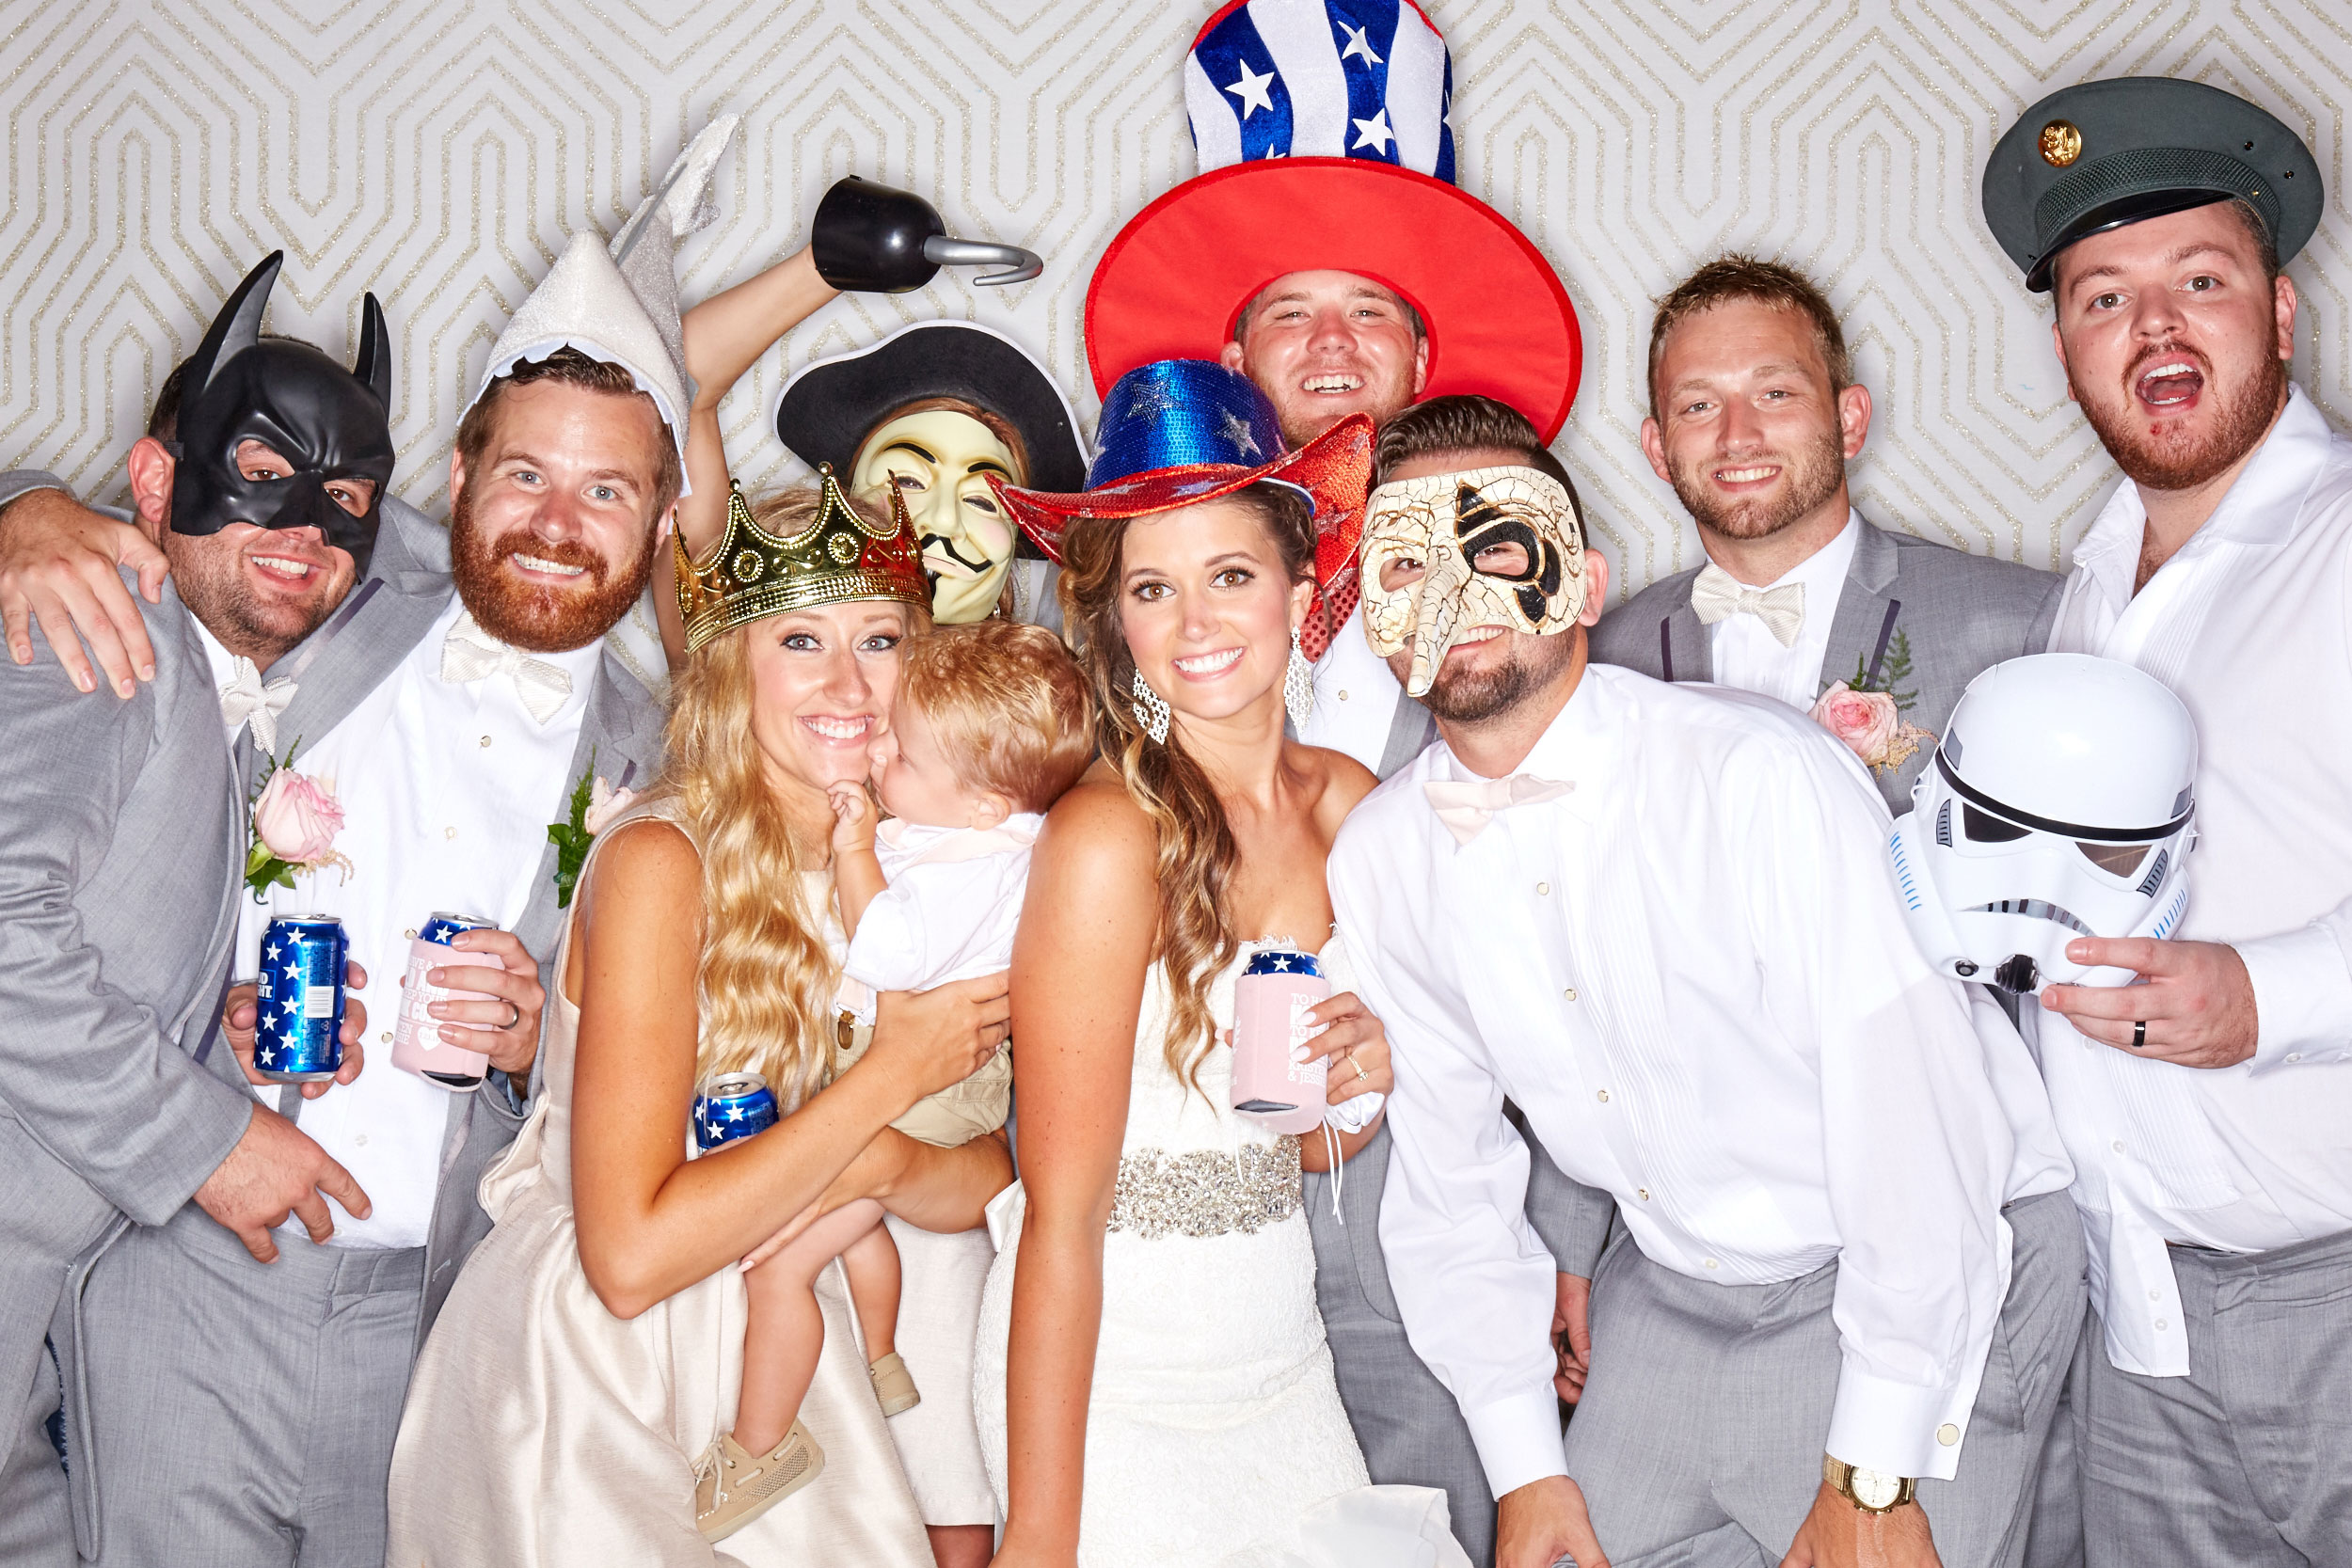 louisville-photo-booth-104.jpg